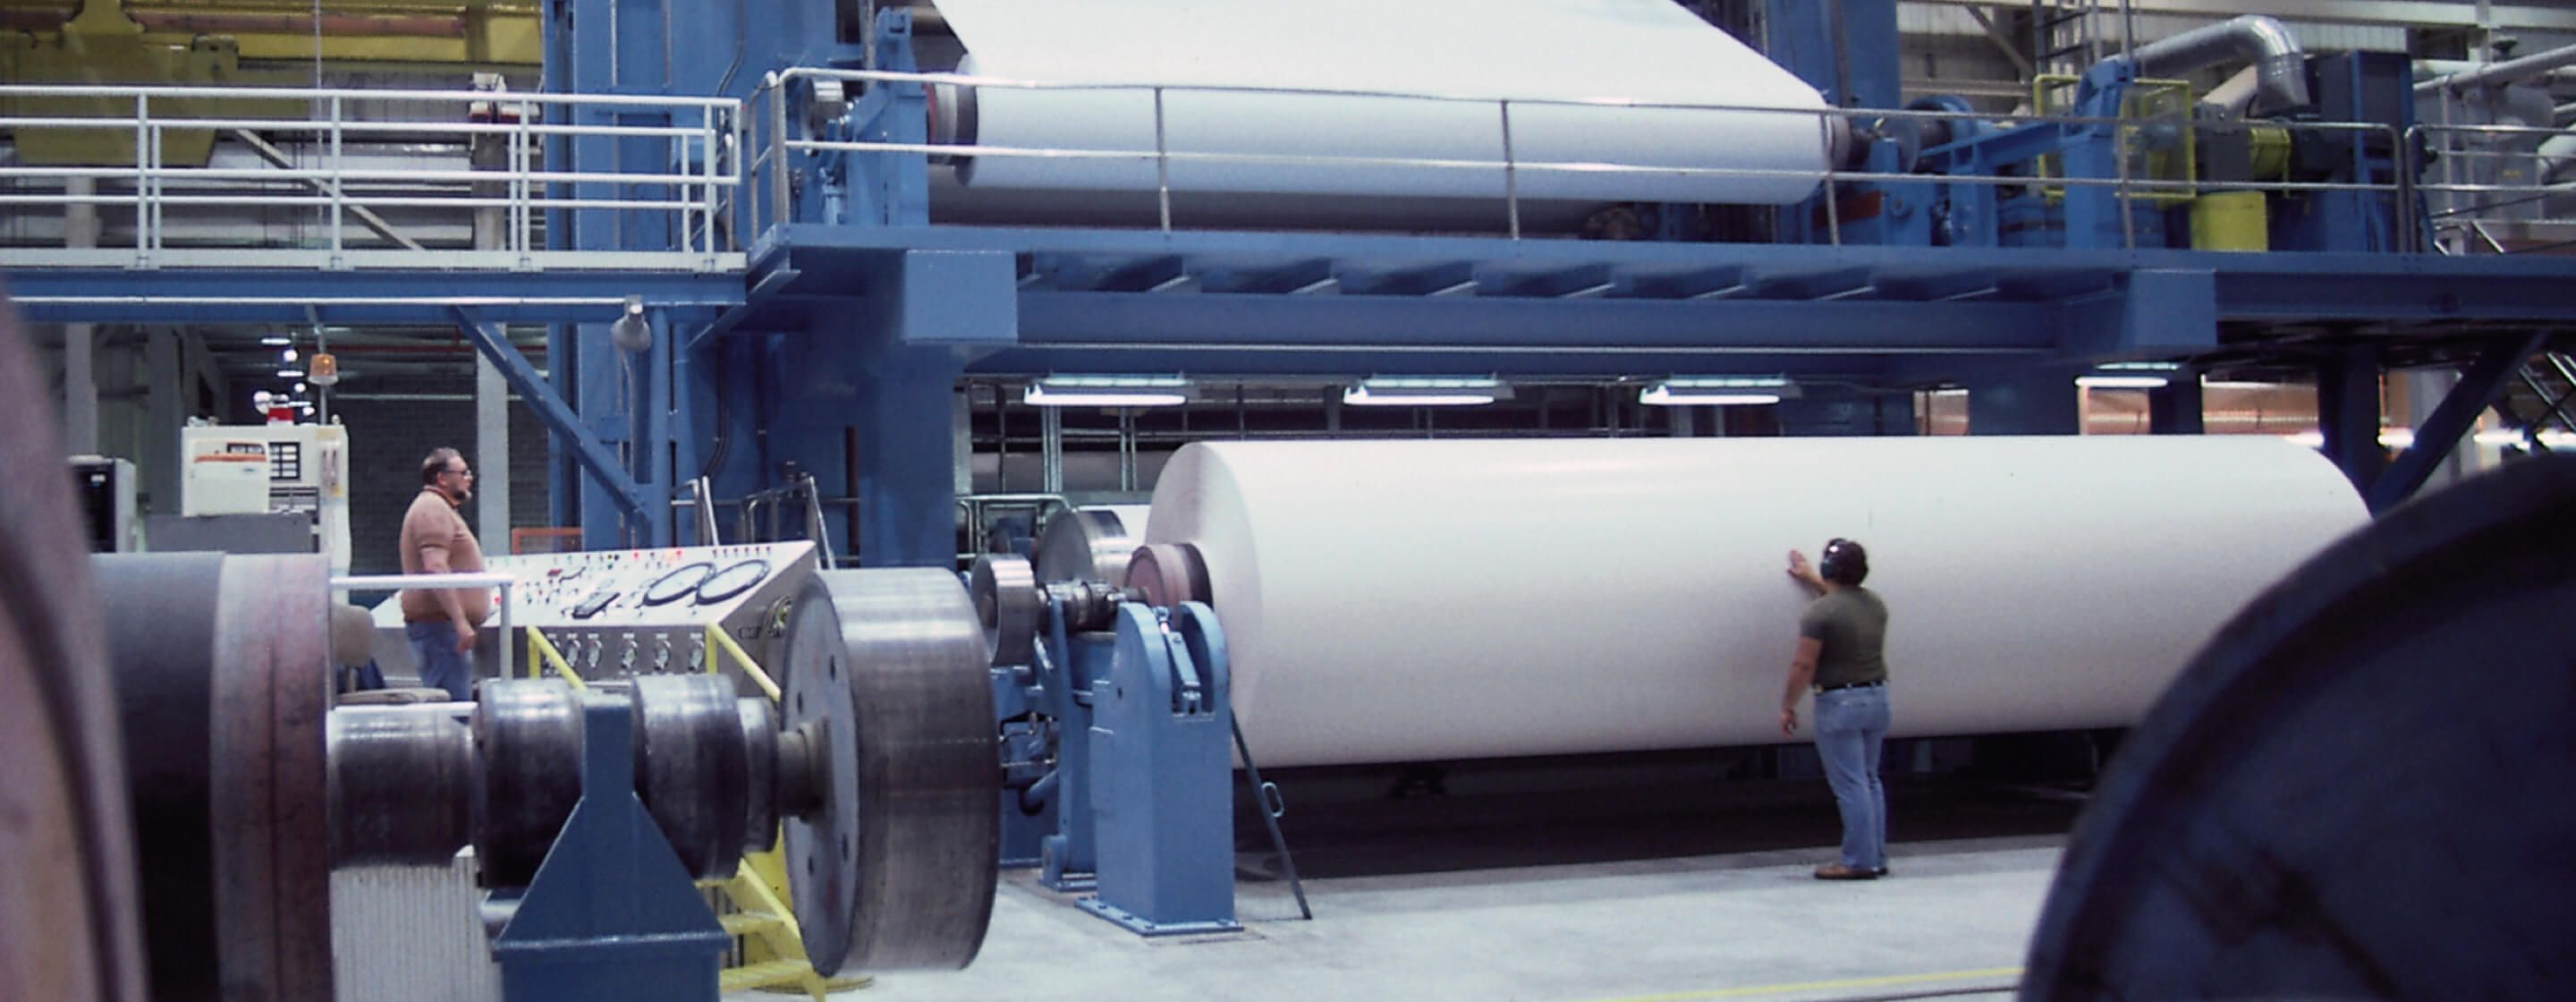 Man inspecting massive roll of paper in a pulp and paper plant